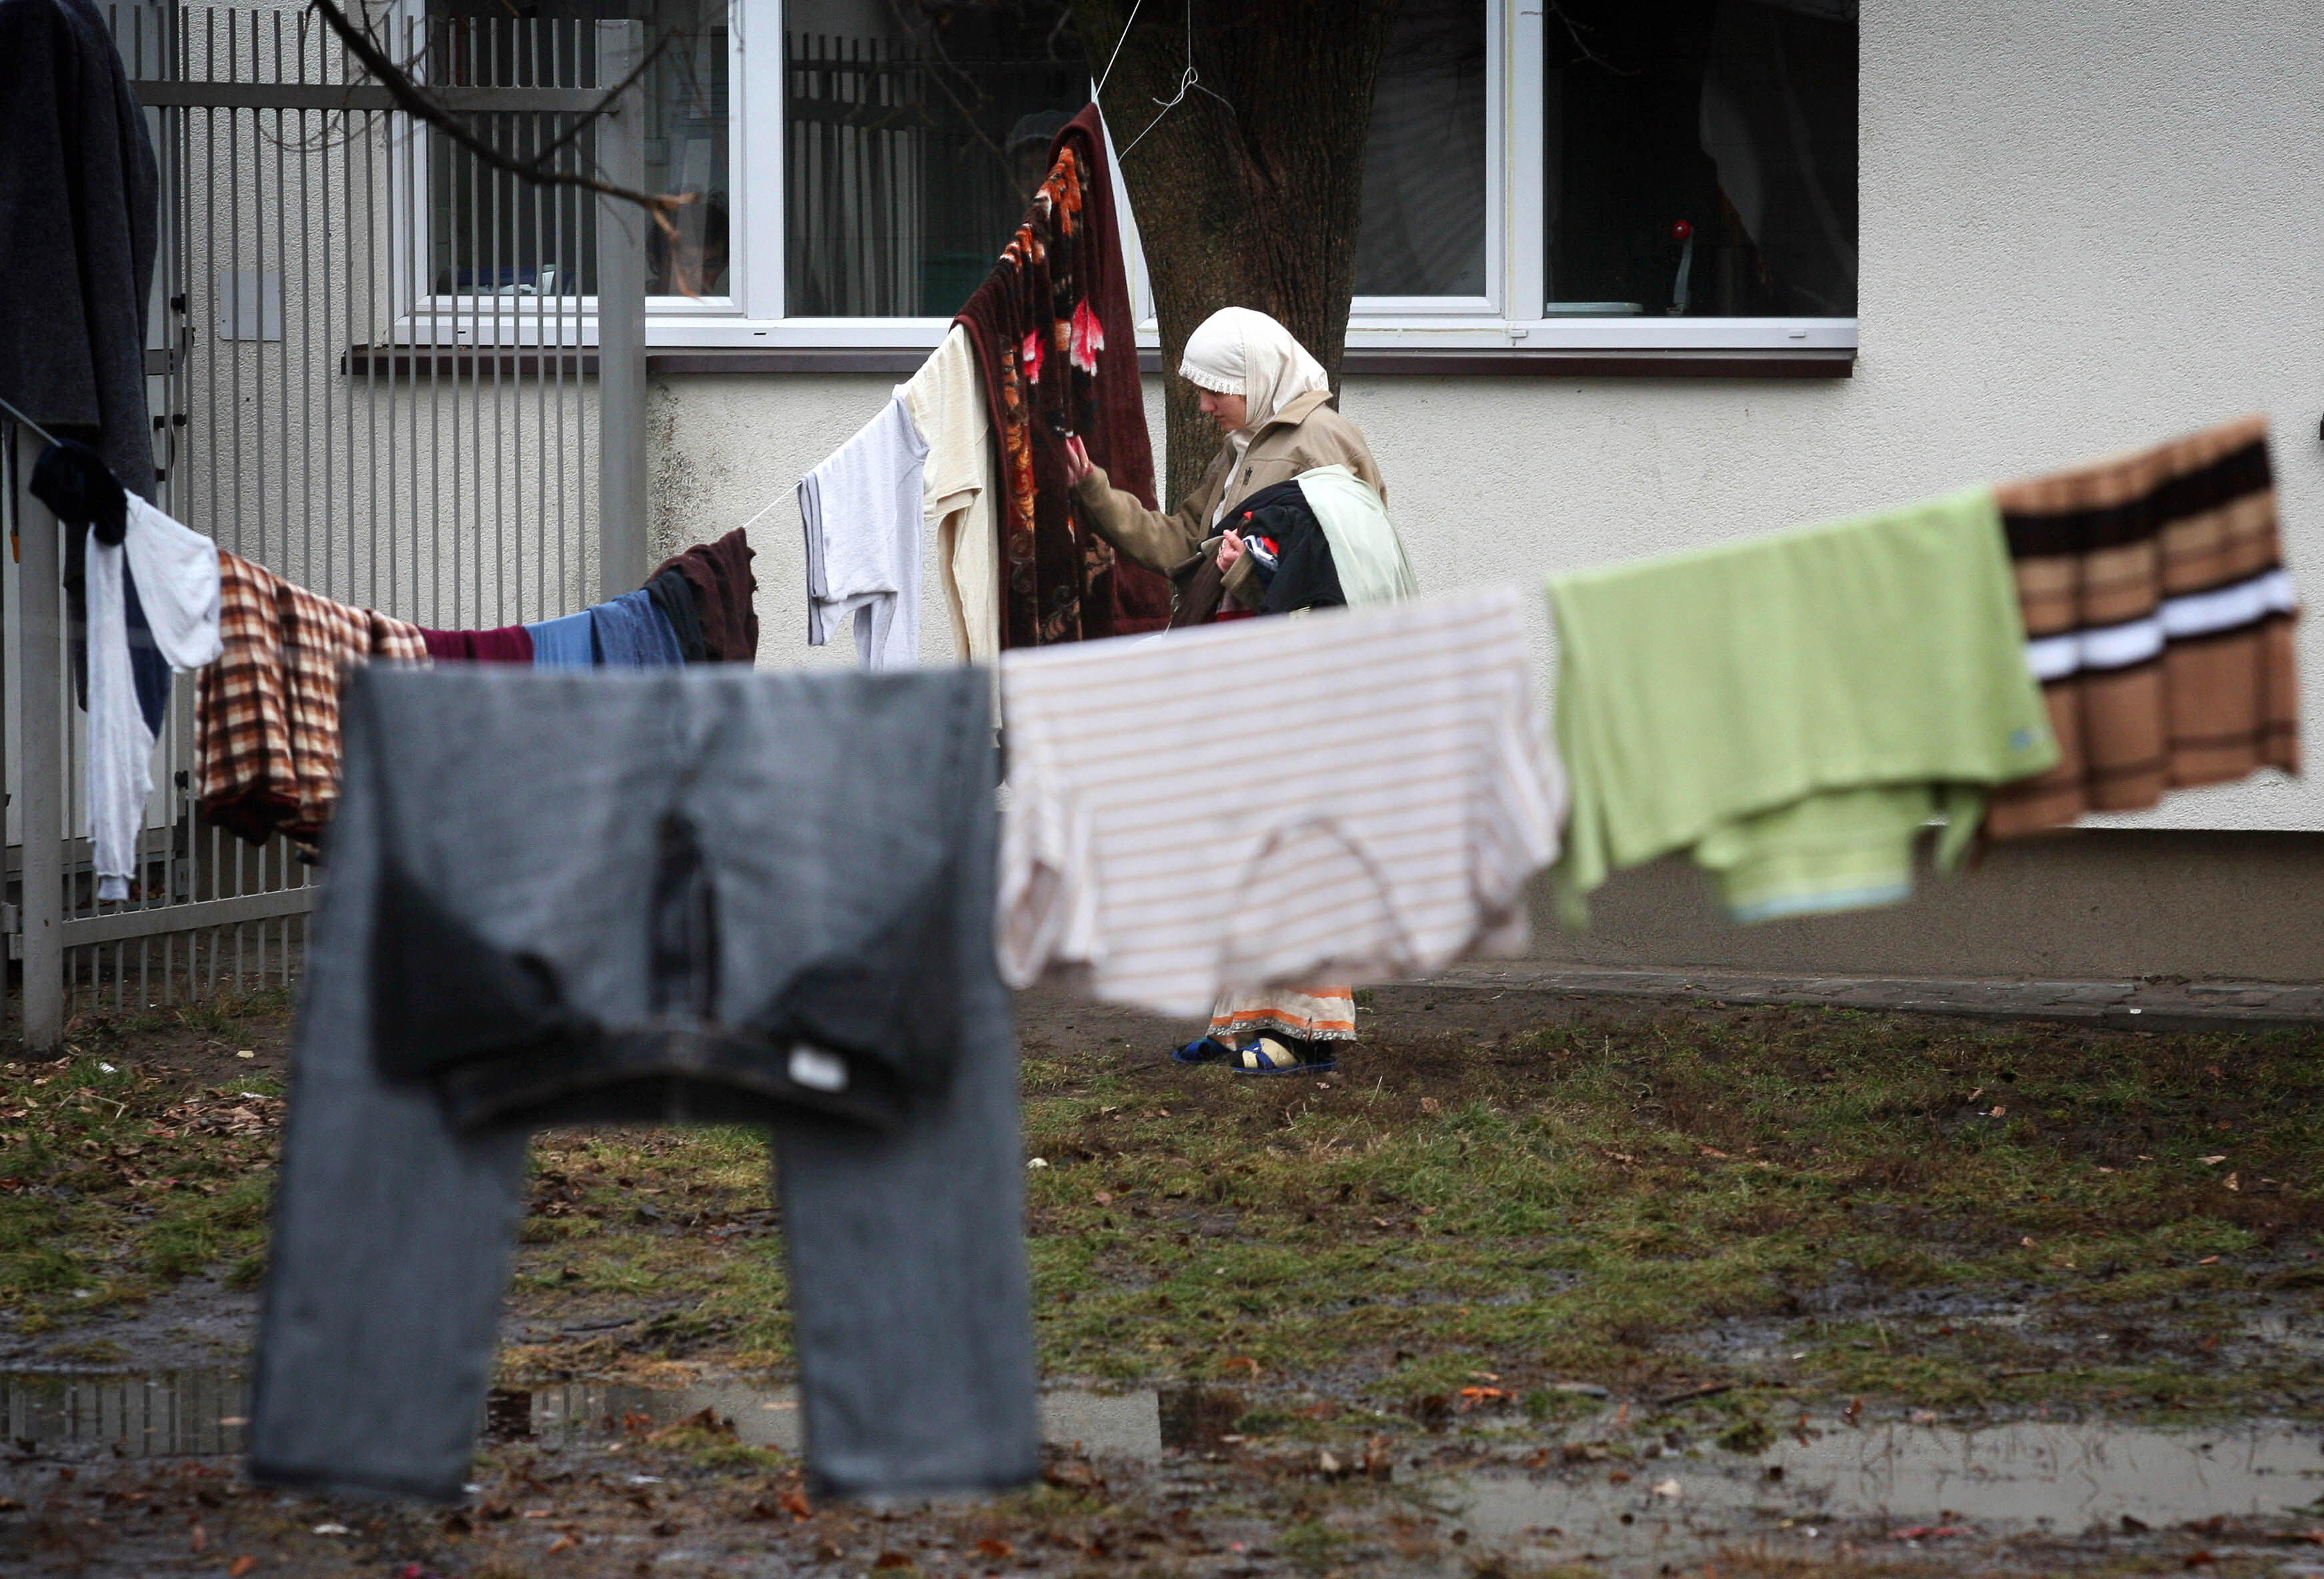 A Chechen woman at a refugee camp in the village of Debak, near Warsaw, on Jan. 16, 2008.